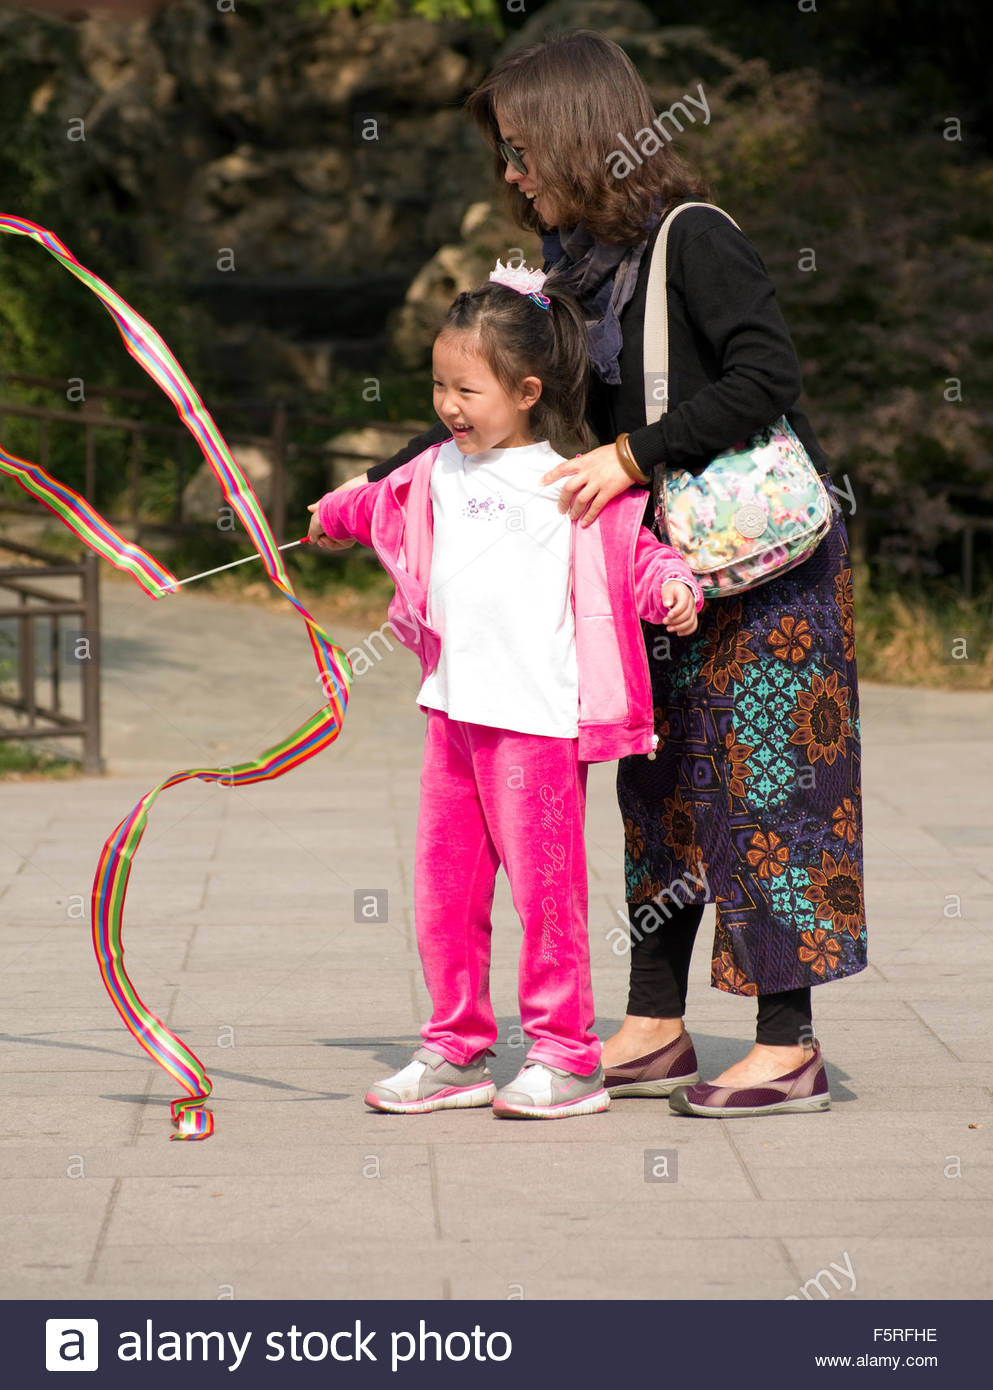 A young Chinese girl, happy to be twirling a ribbon with her mother, in Beihai Park in Beijing, China. - Stock Image